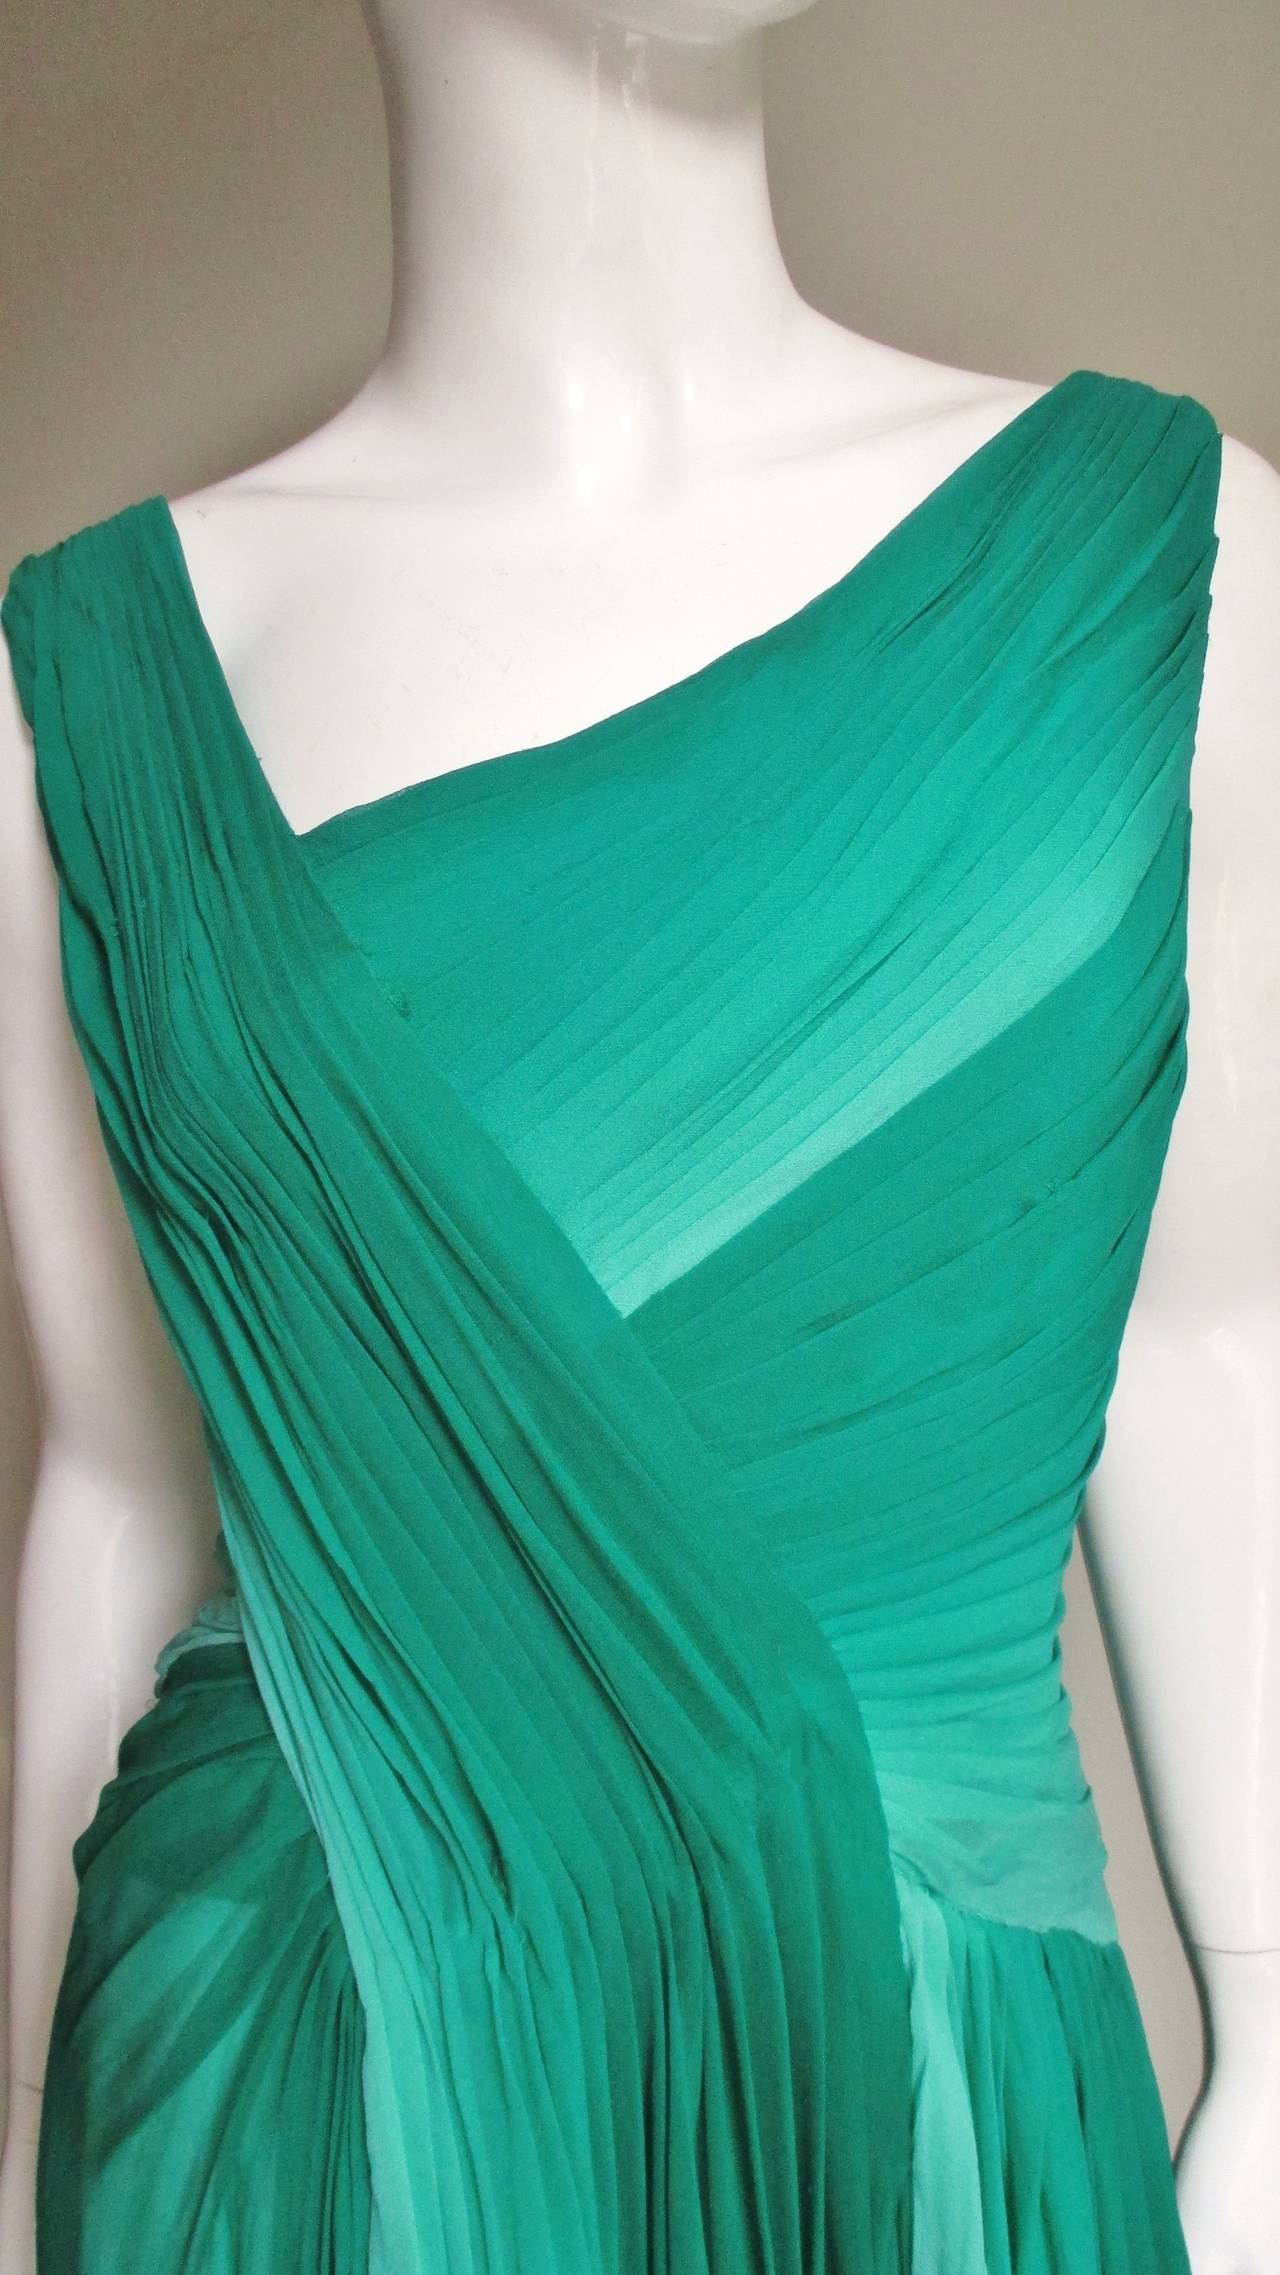 Blue Monique L'huillier Emerald Silk Ombre Gown With Train For Sale